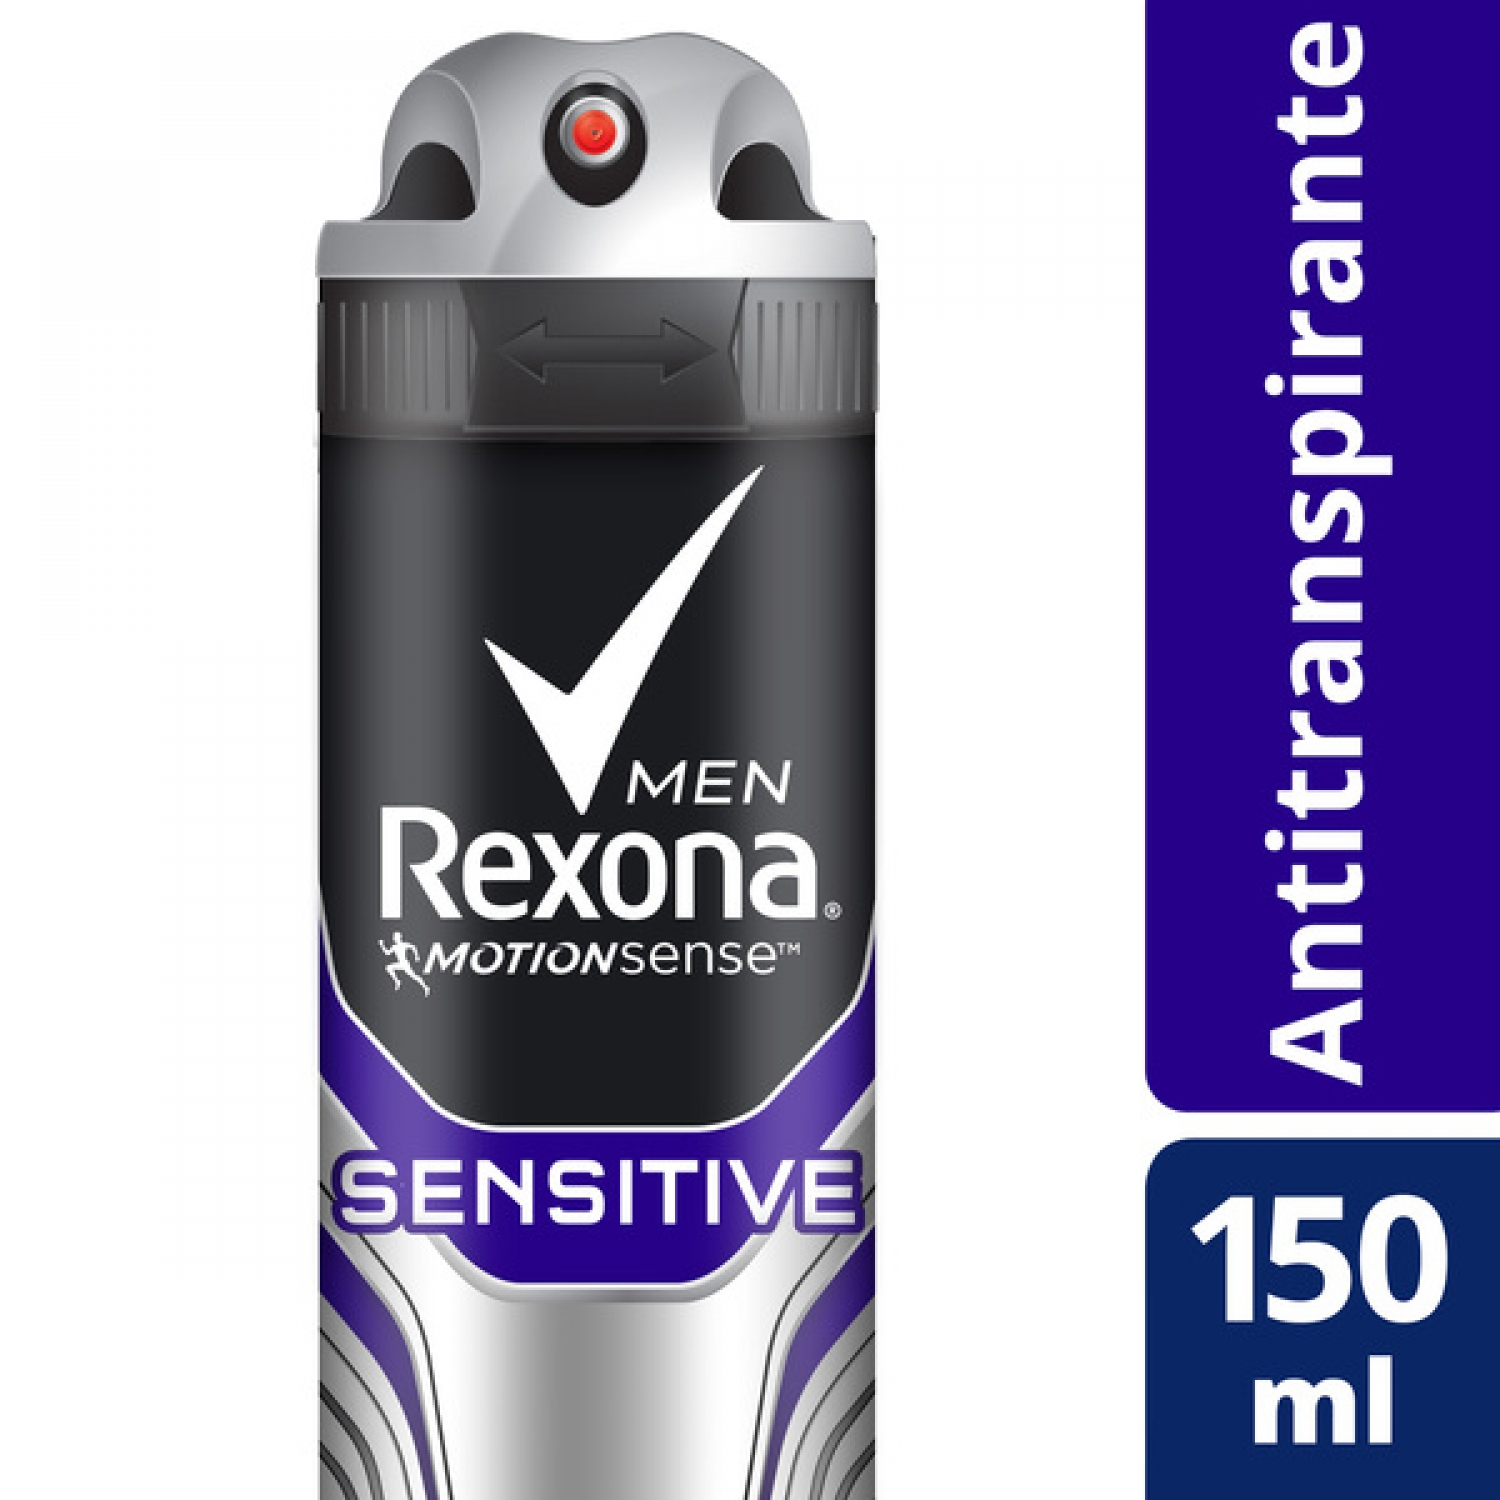 Antitranspirante Masculino Rexona Sensitive